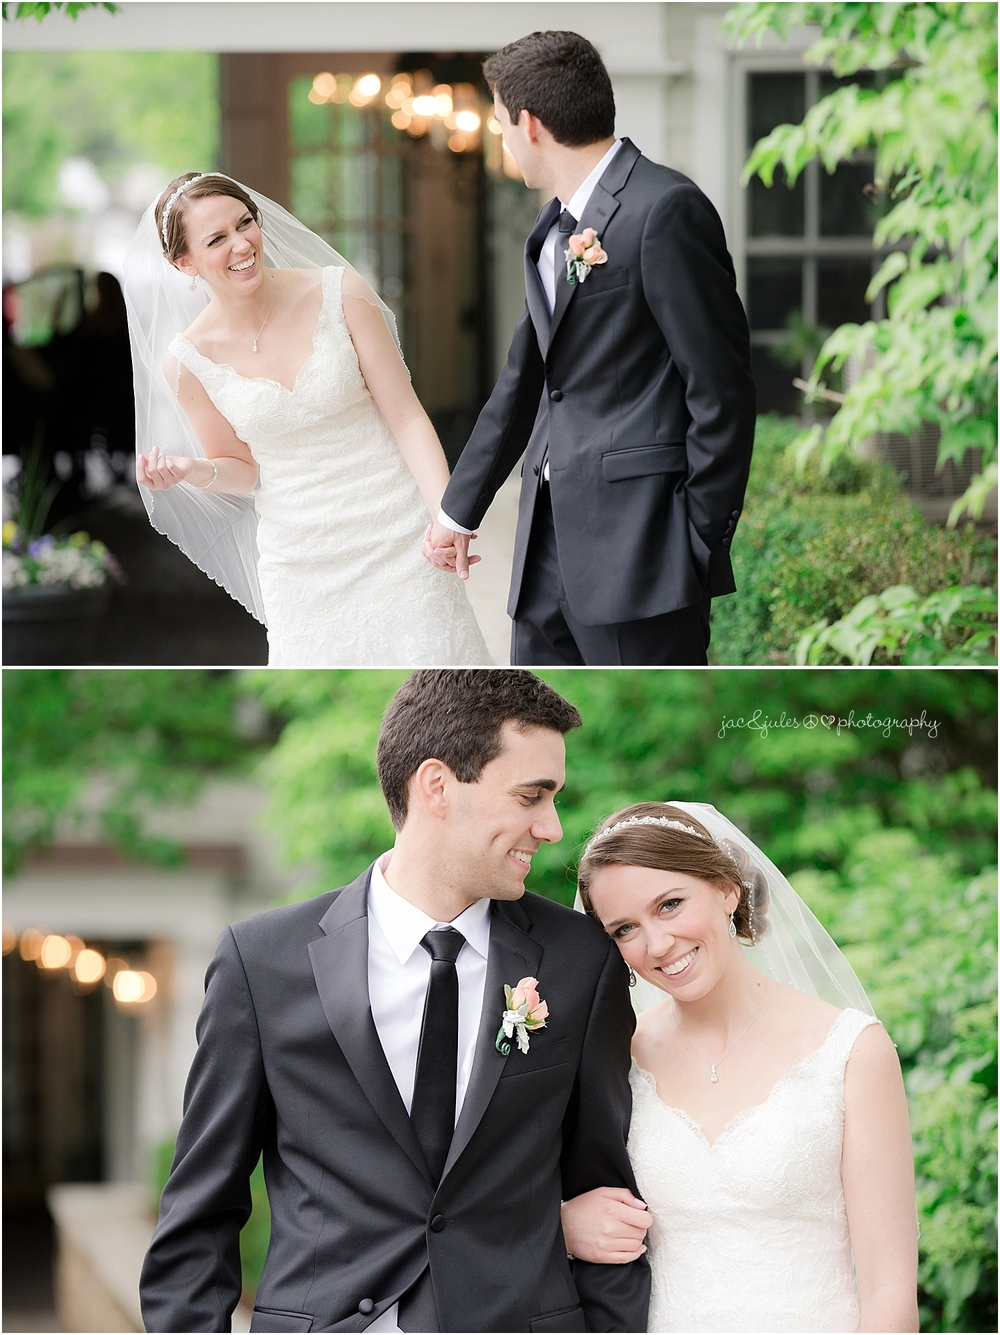 jacnjules photographs bride and groom photos on their wedding day at olde mill inn in basking ridge nj